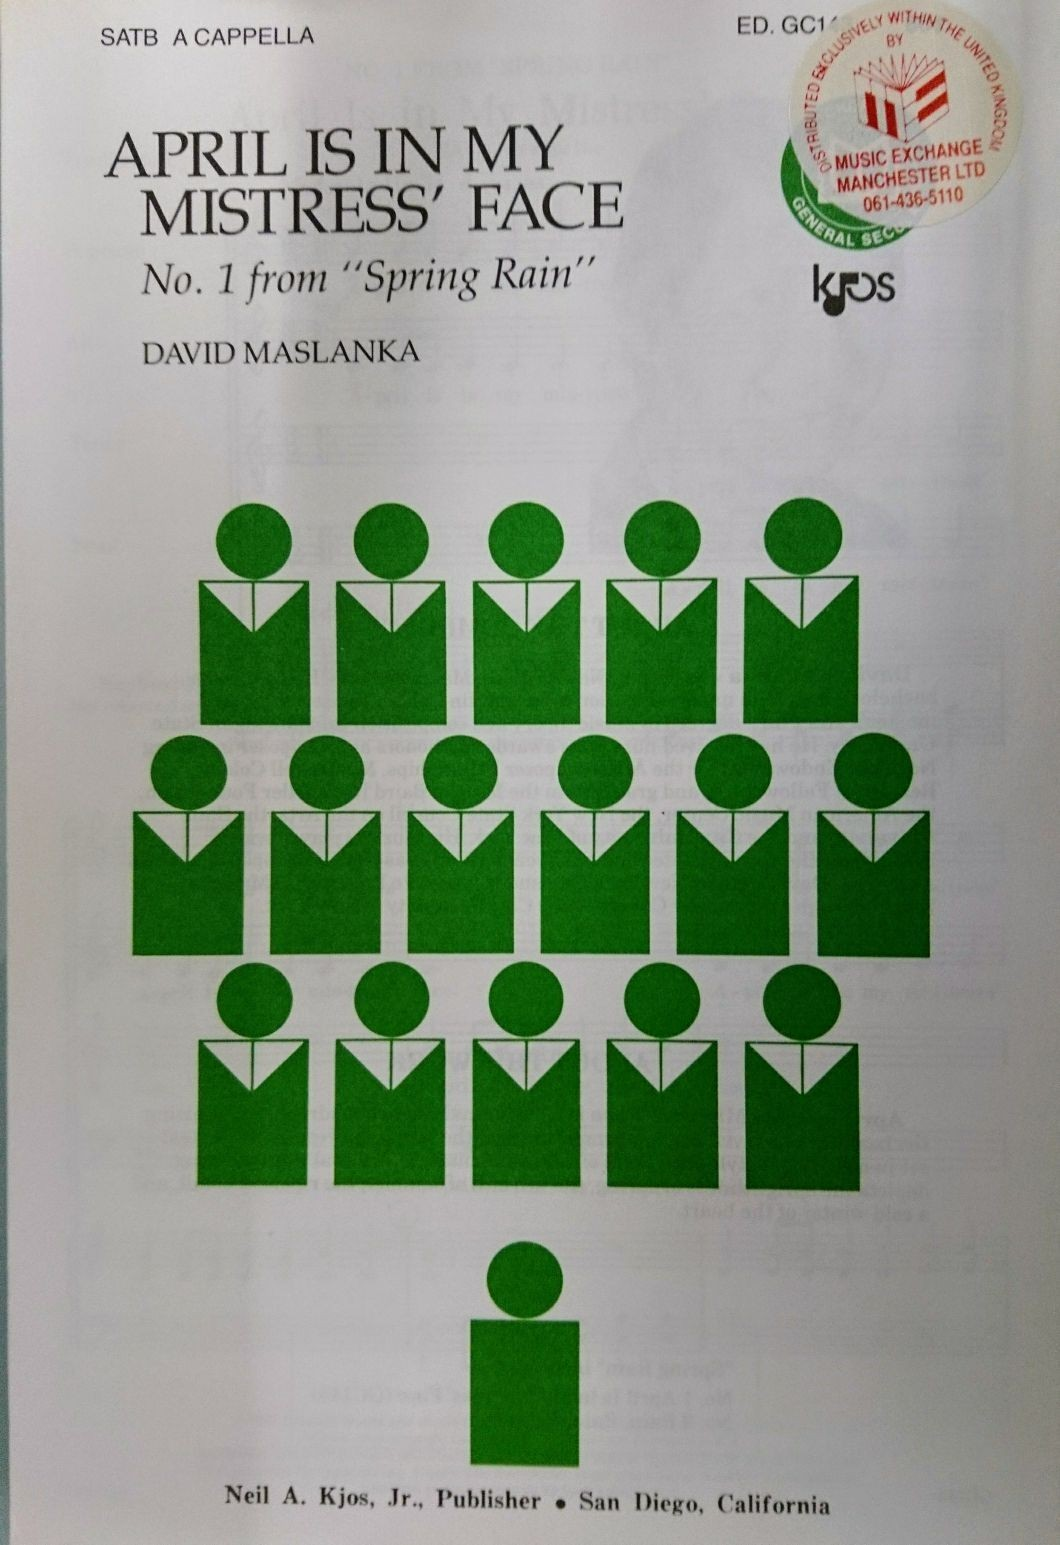 April Is In My Mistress' Face Spring Rain SATB Vocal Sheet Music S162